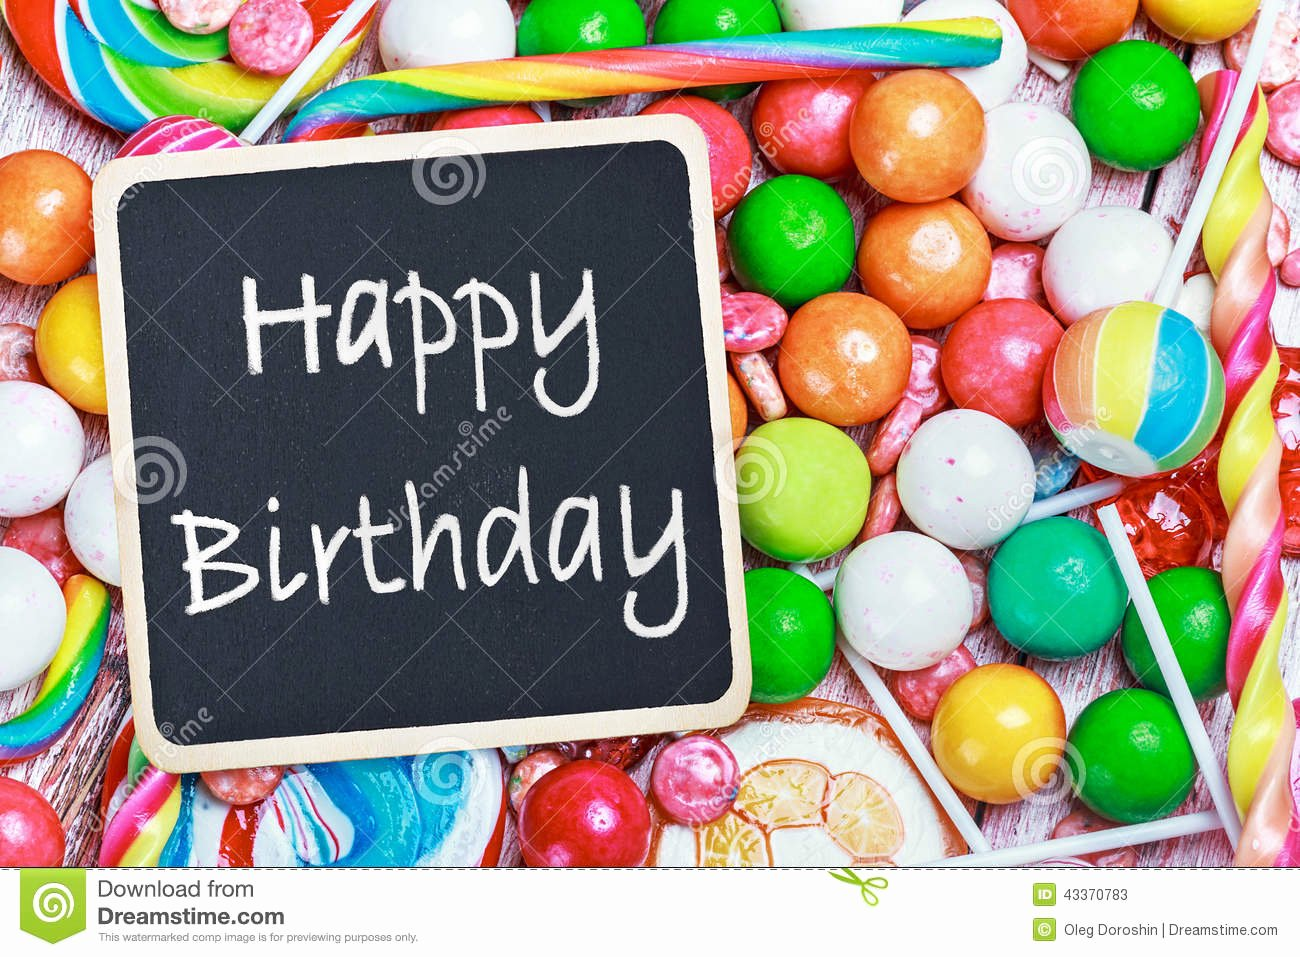 Happy Birthday Candy Images Beautiful Blackboard with Congratulations to the Happy Birthday